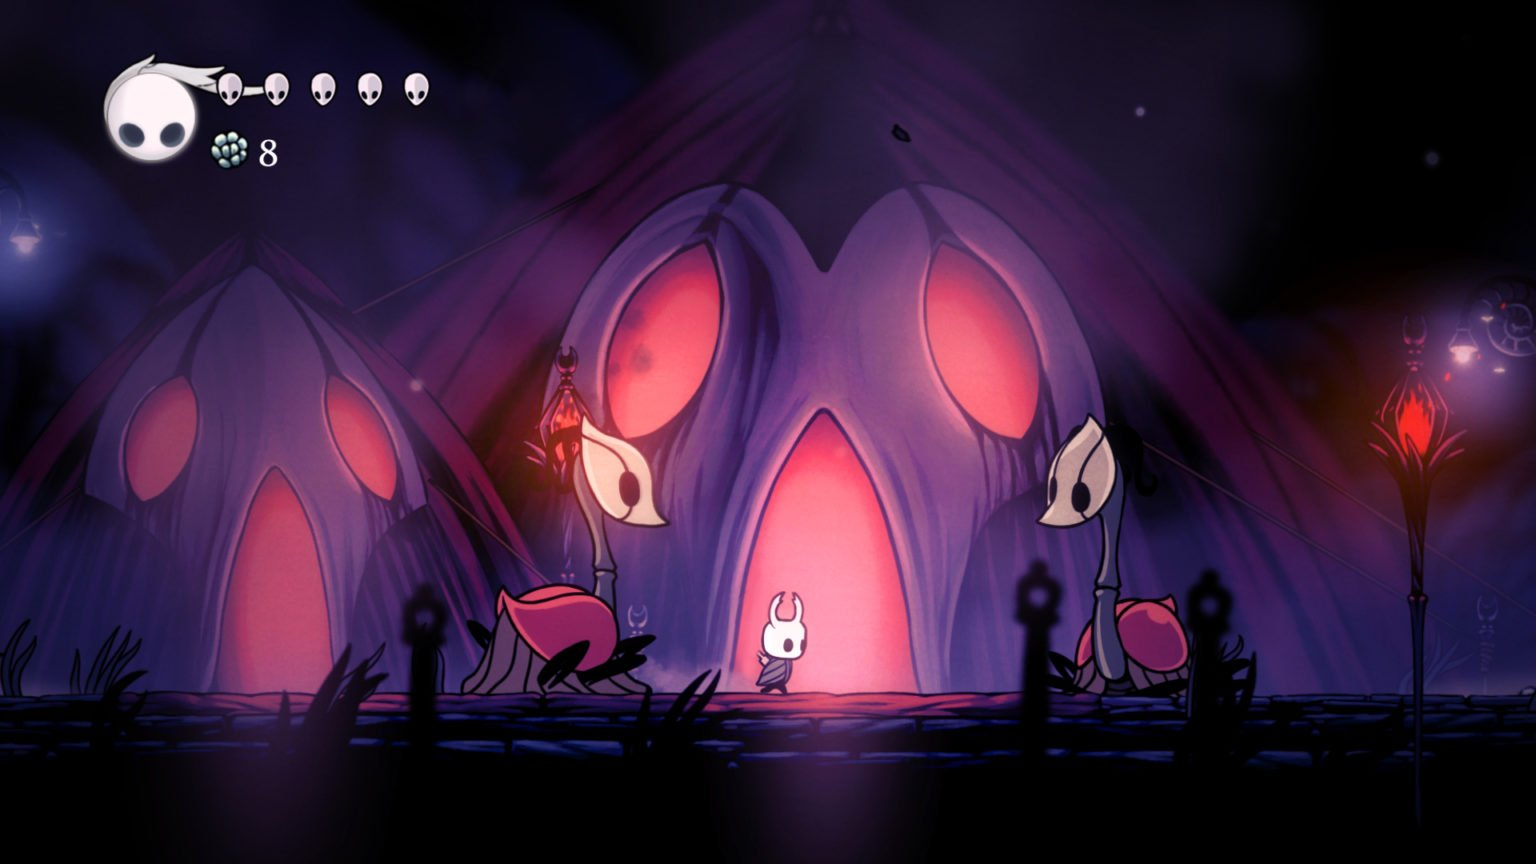 How to play Hollow Knight 2